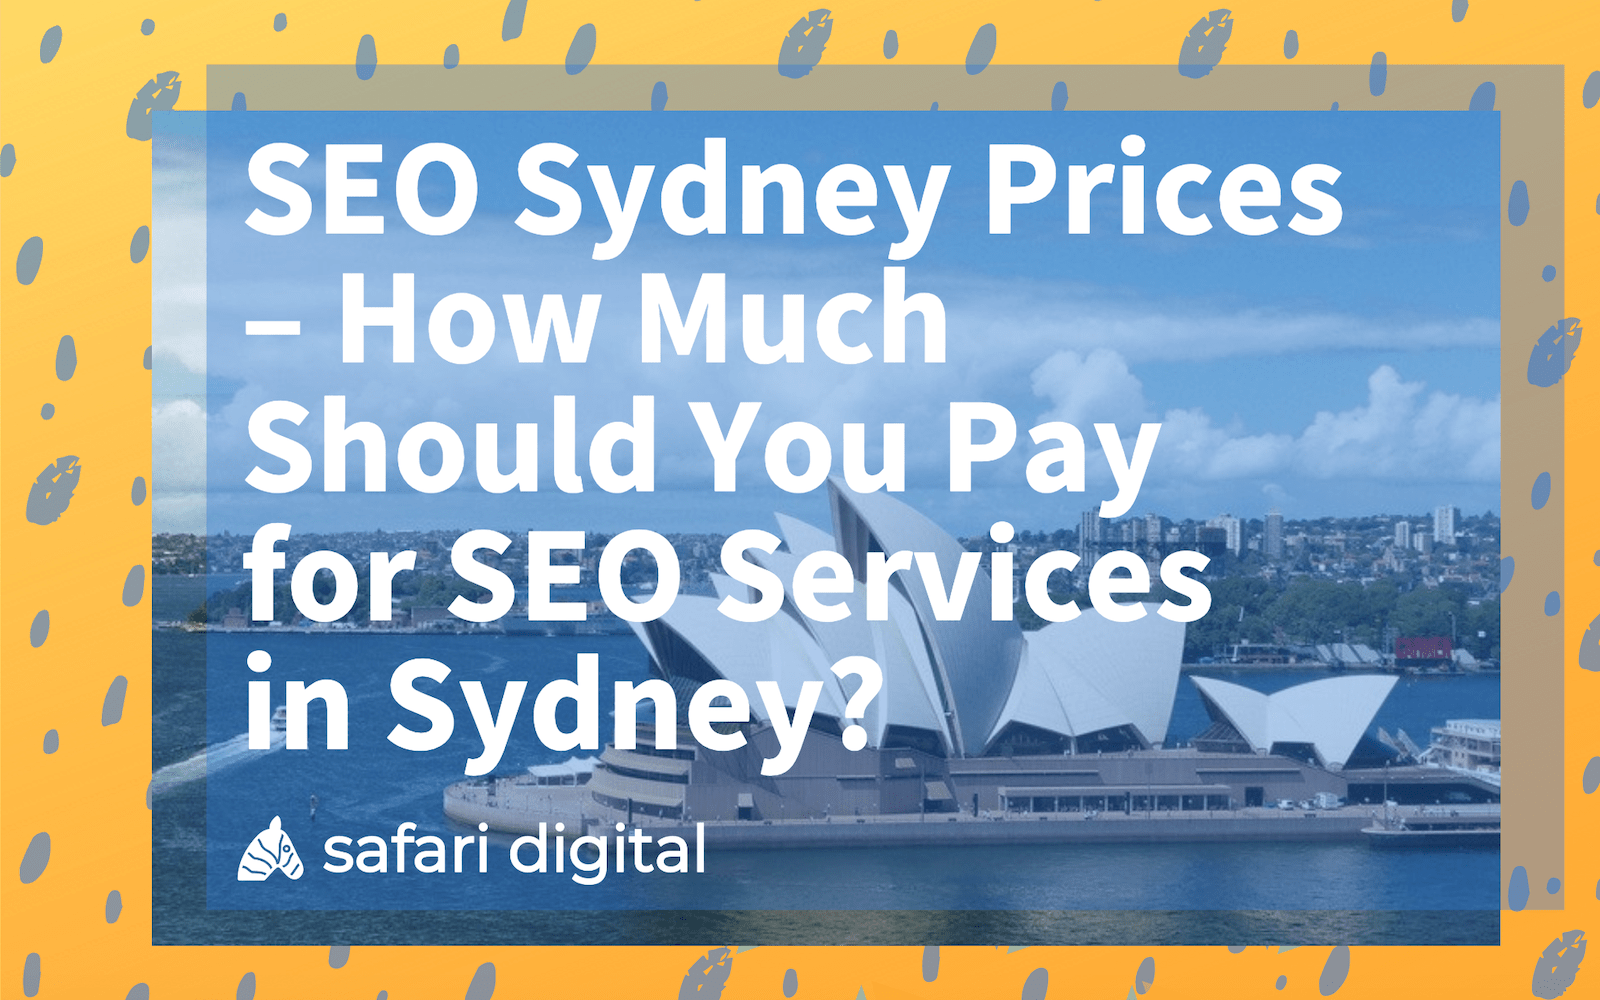 SEO sydney prices cover image